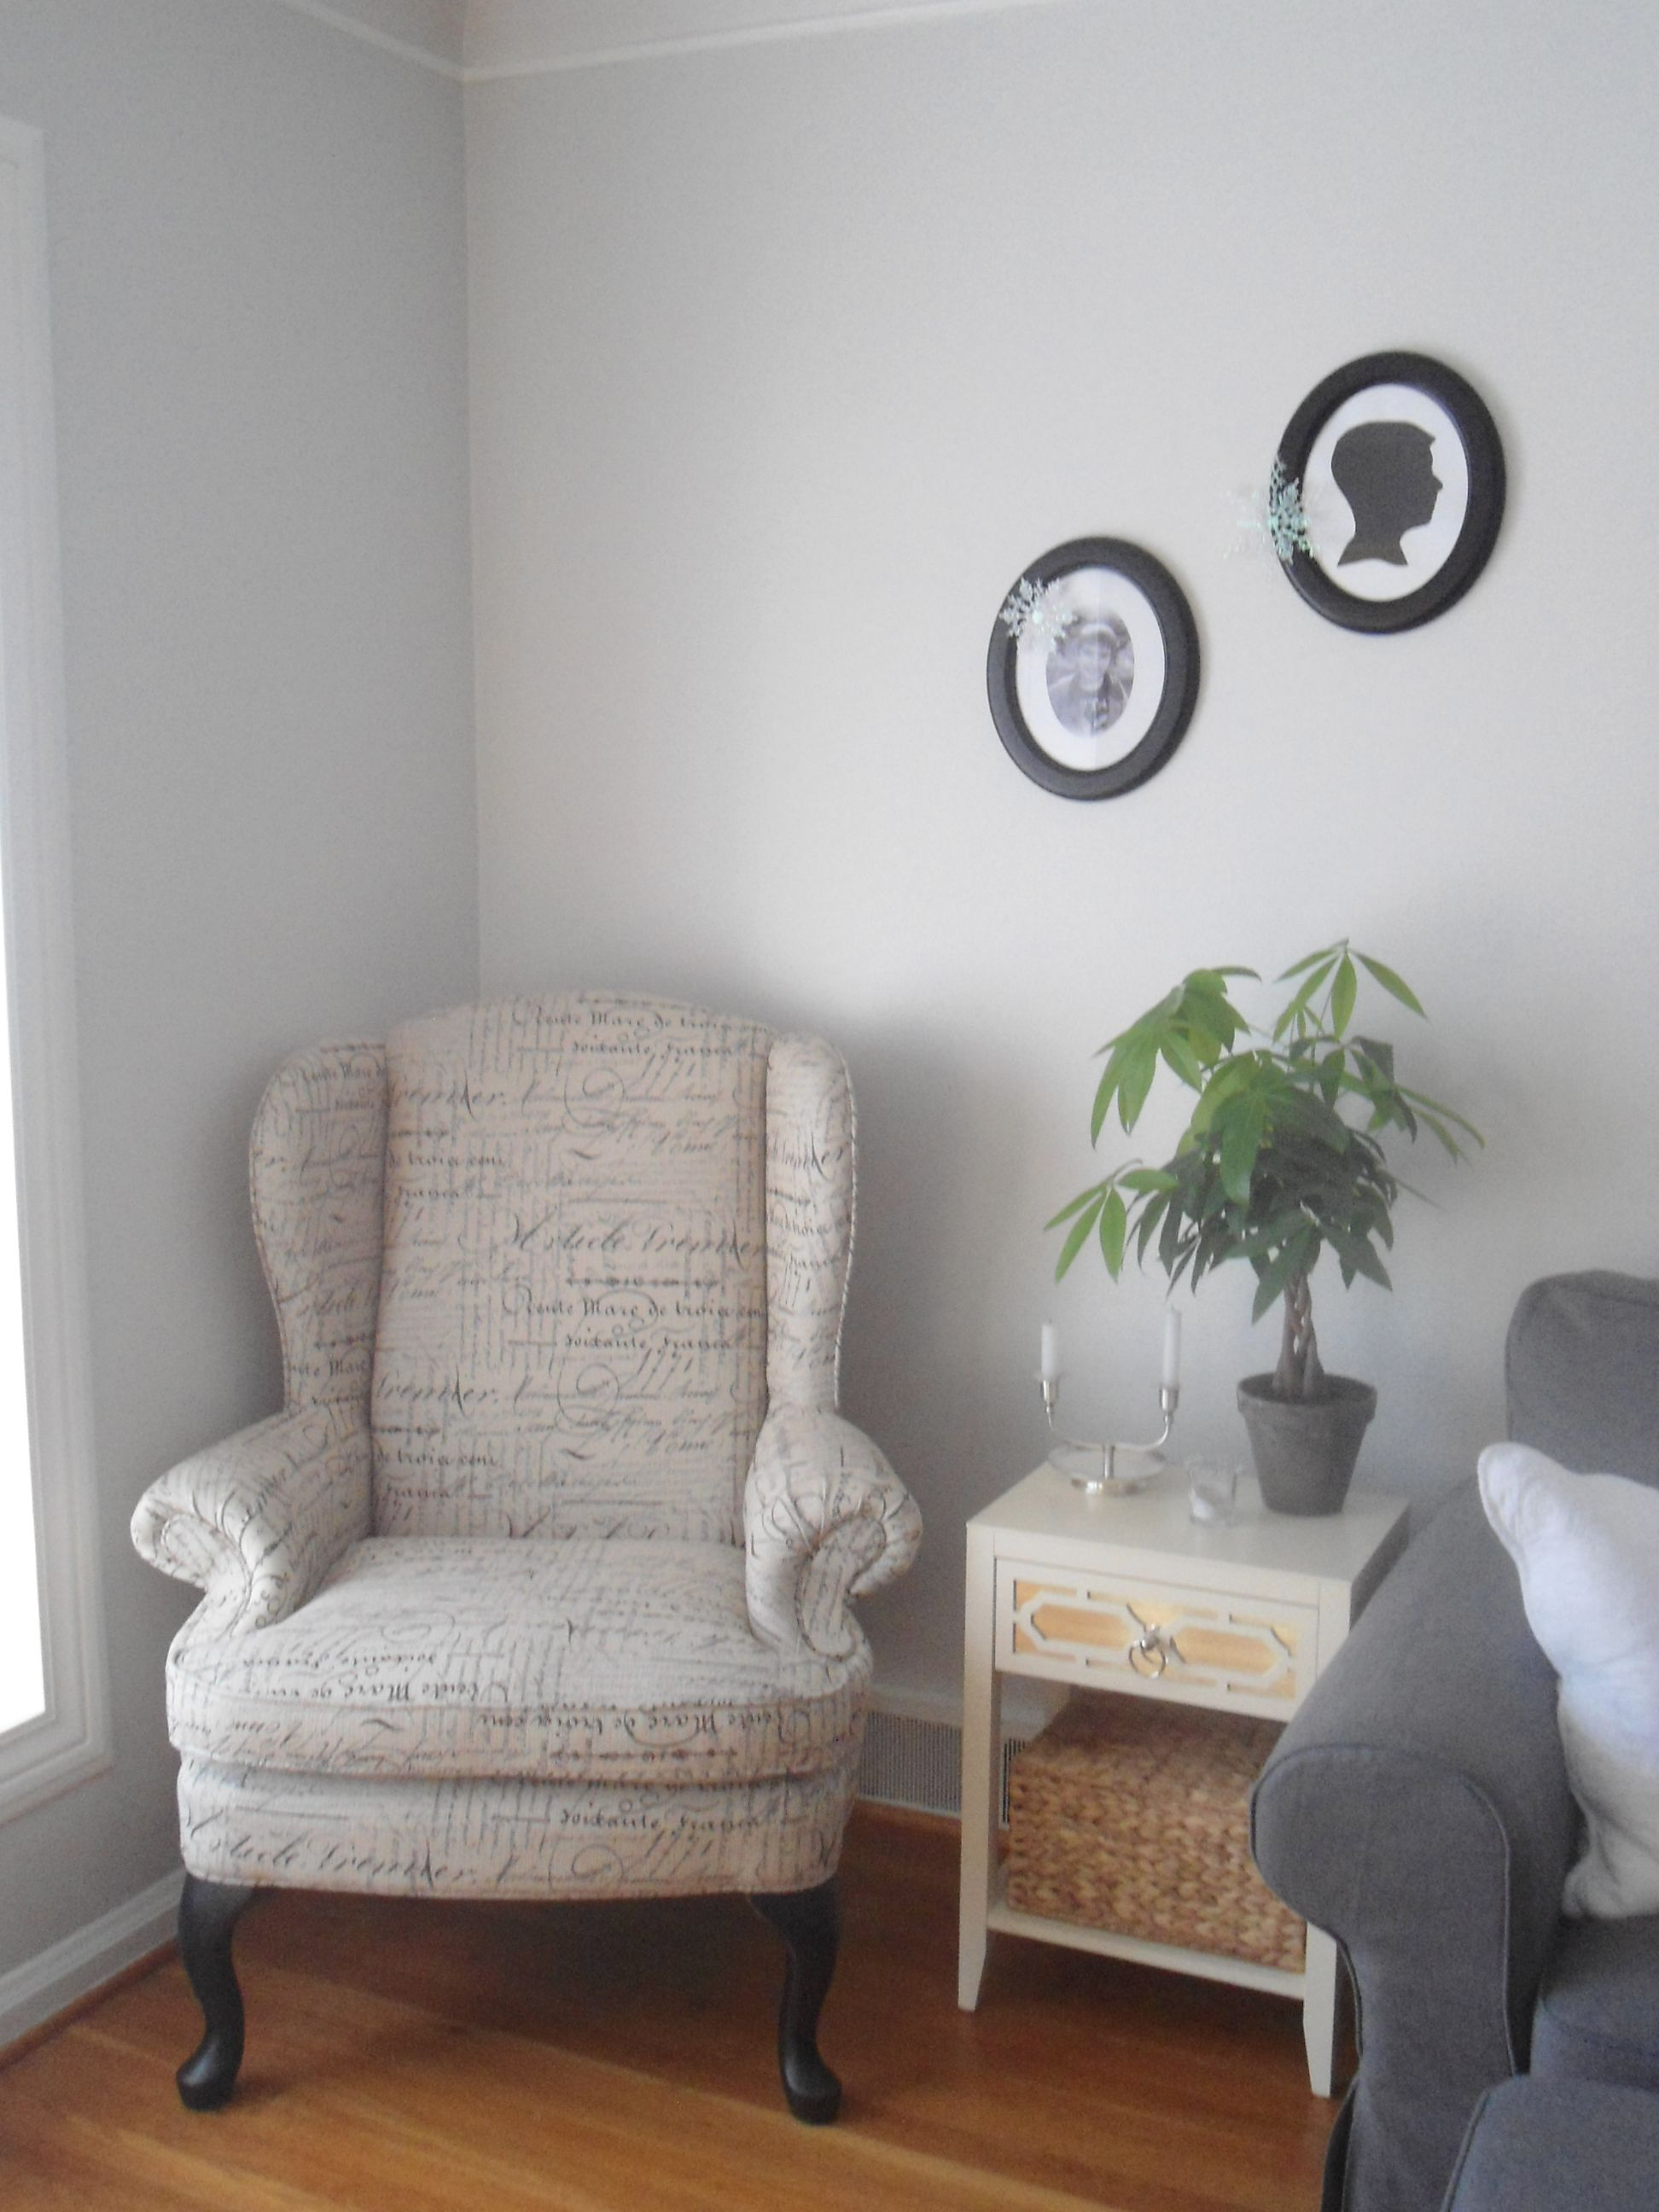 Living Room Paint Color Benjamin Moore Gray Owl Oc 52 At